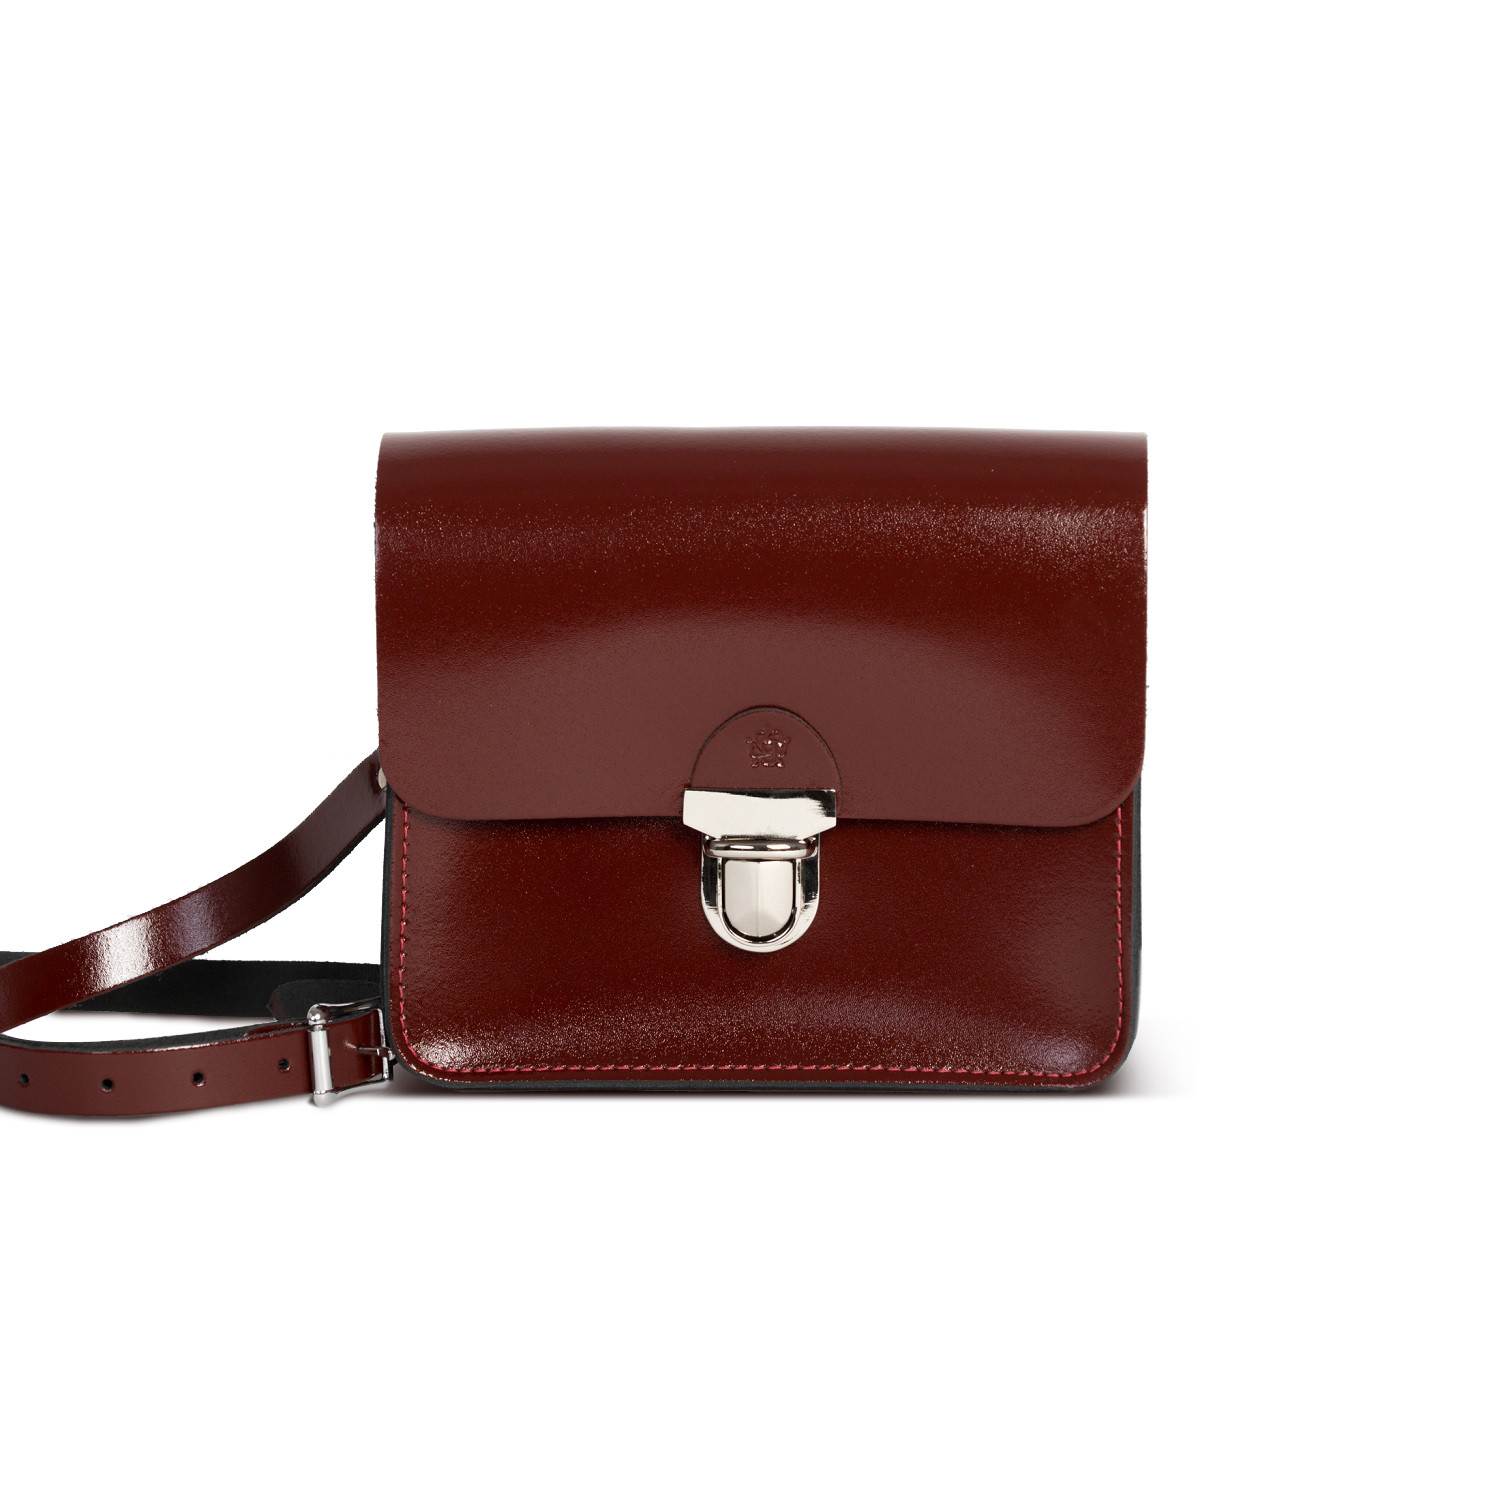 Sofia Premium Leather Crossbody Bag in Oxblood Patent